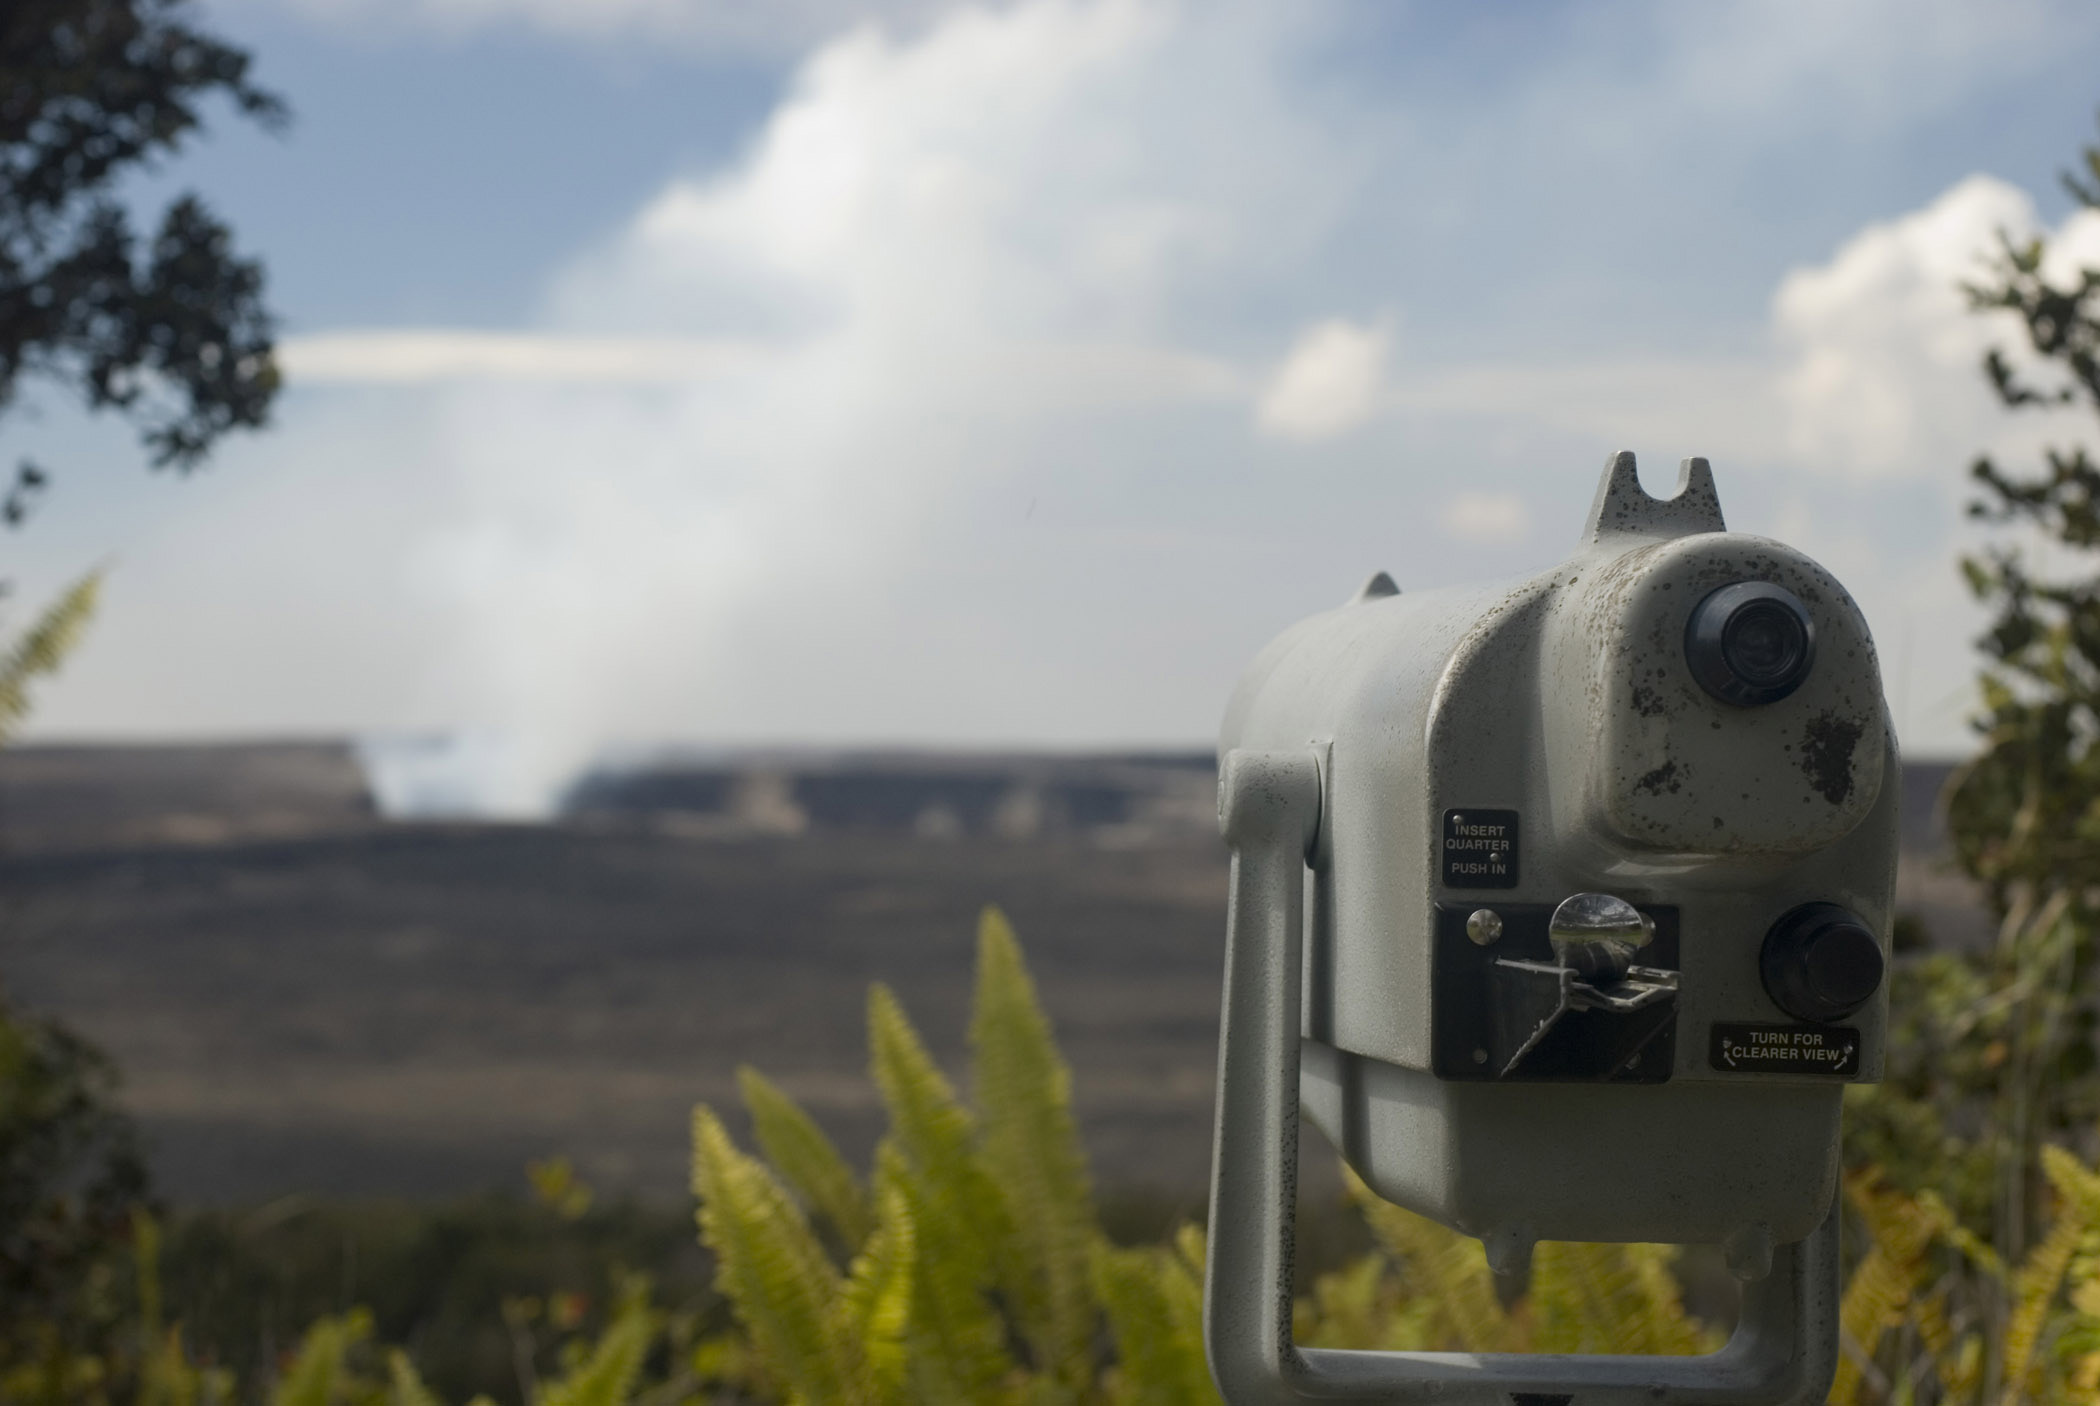 Telescope overlooking the Kikauea Crater with the Haleamaumau crater in the center of the Kilauea caldera releasing smoke and steam - the heart of Kilauea volcano